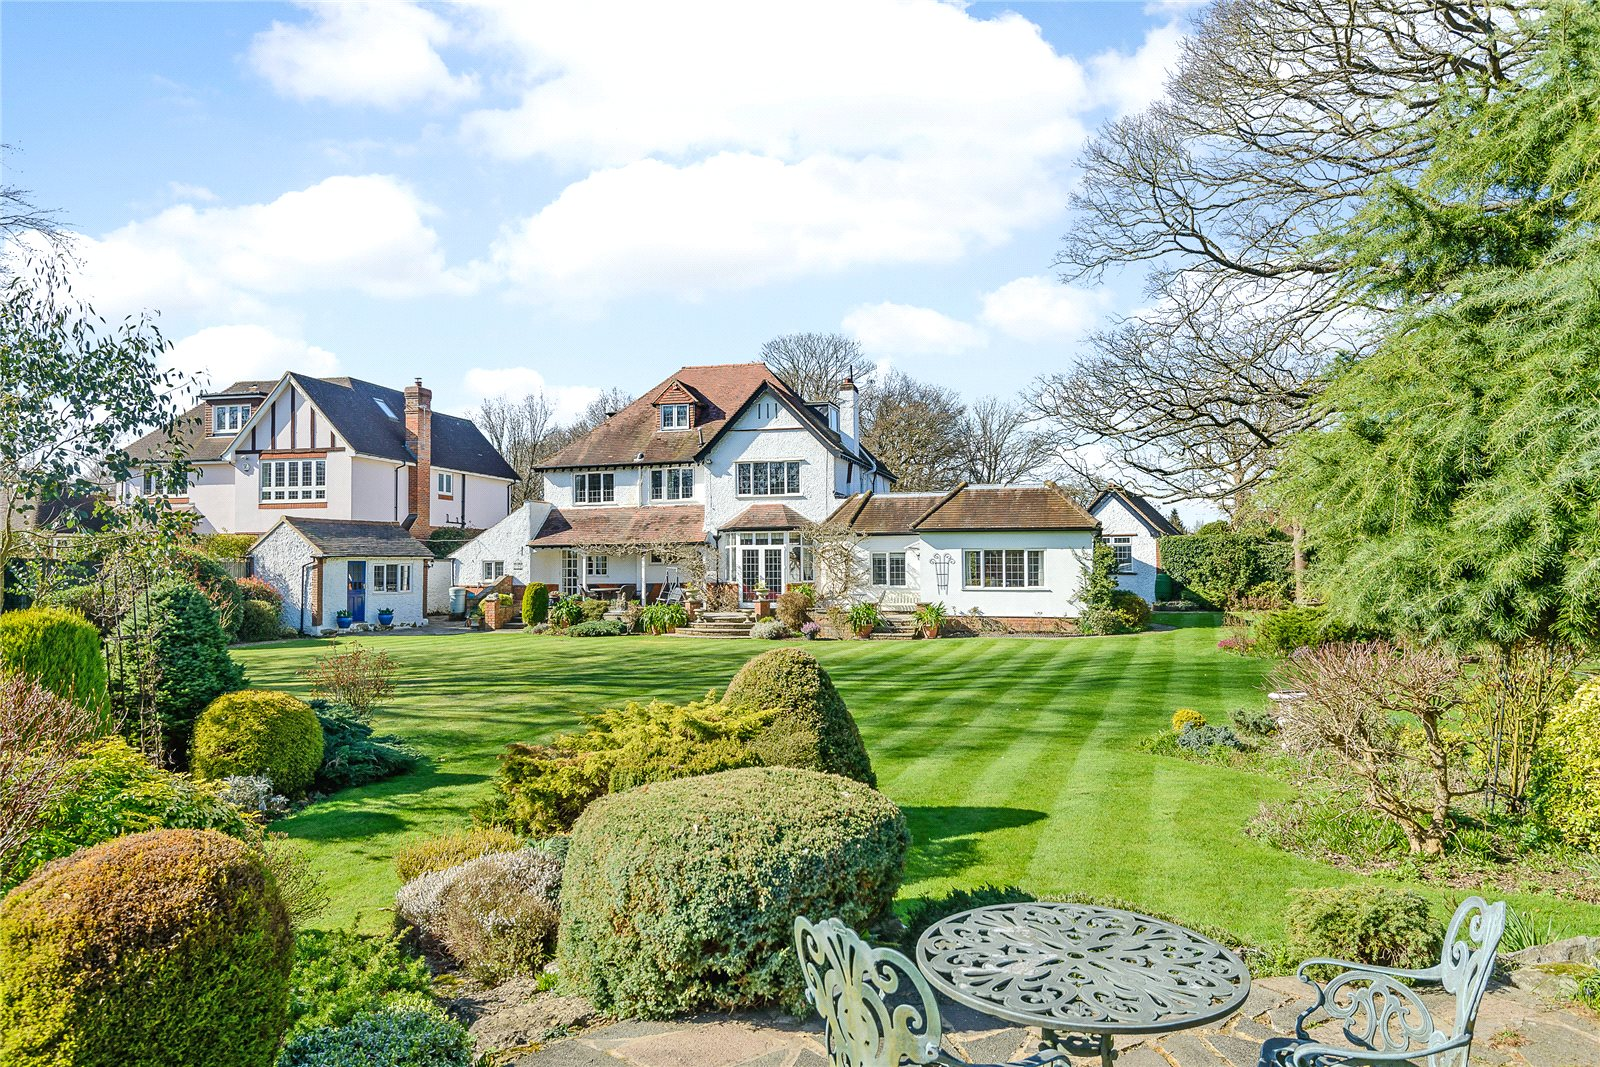 Single Family Home for Sale at Austenway, Chalfont St Peter, Gerrards Cross, Buckinghamshire, SL9 Gerrards Cross, England